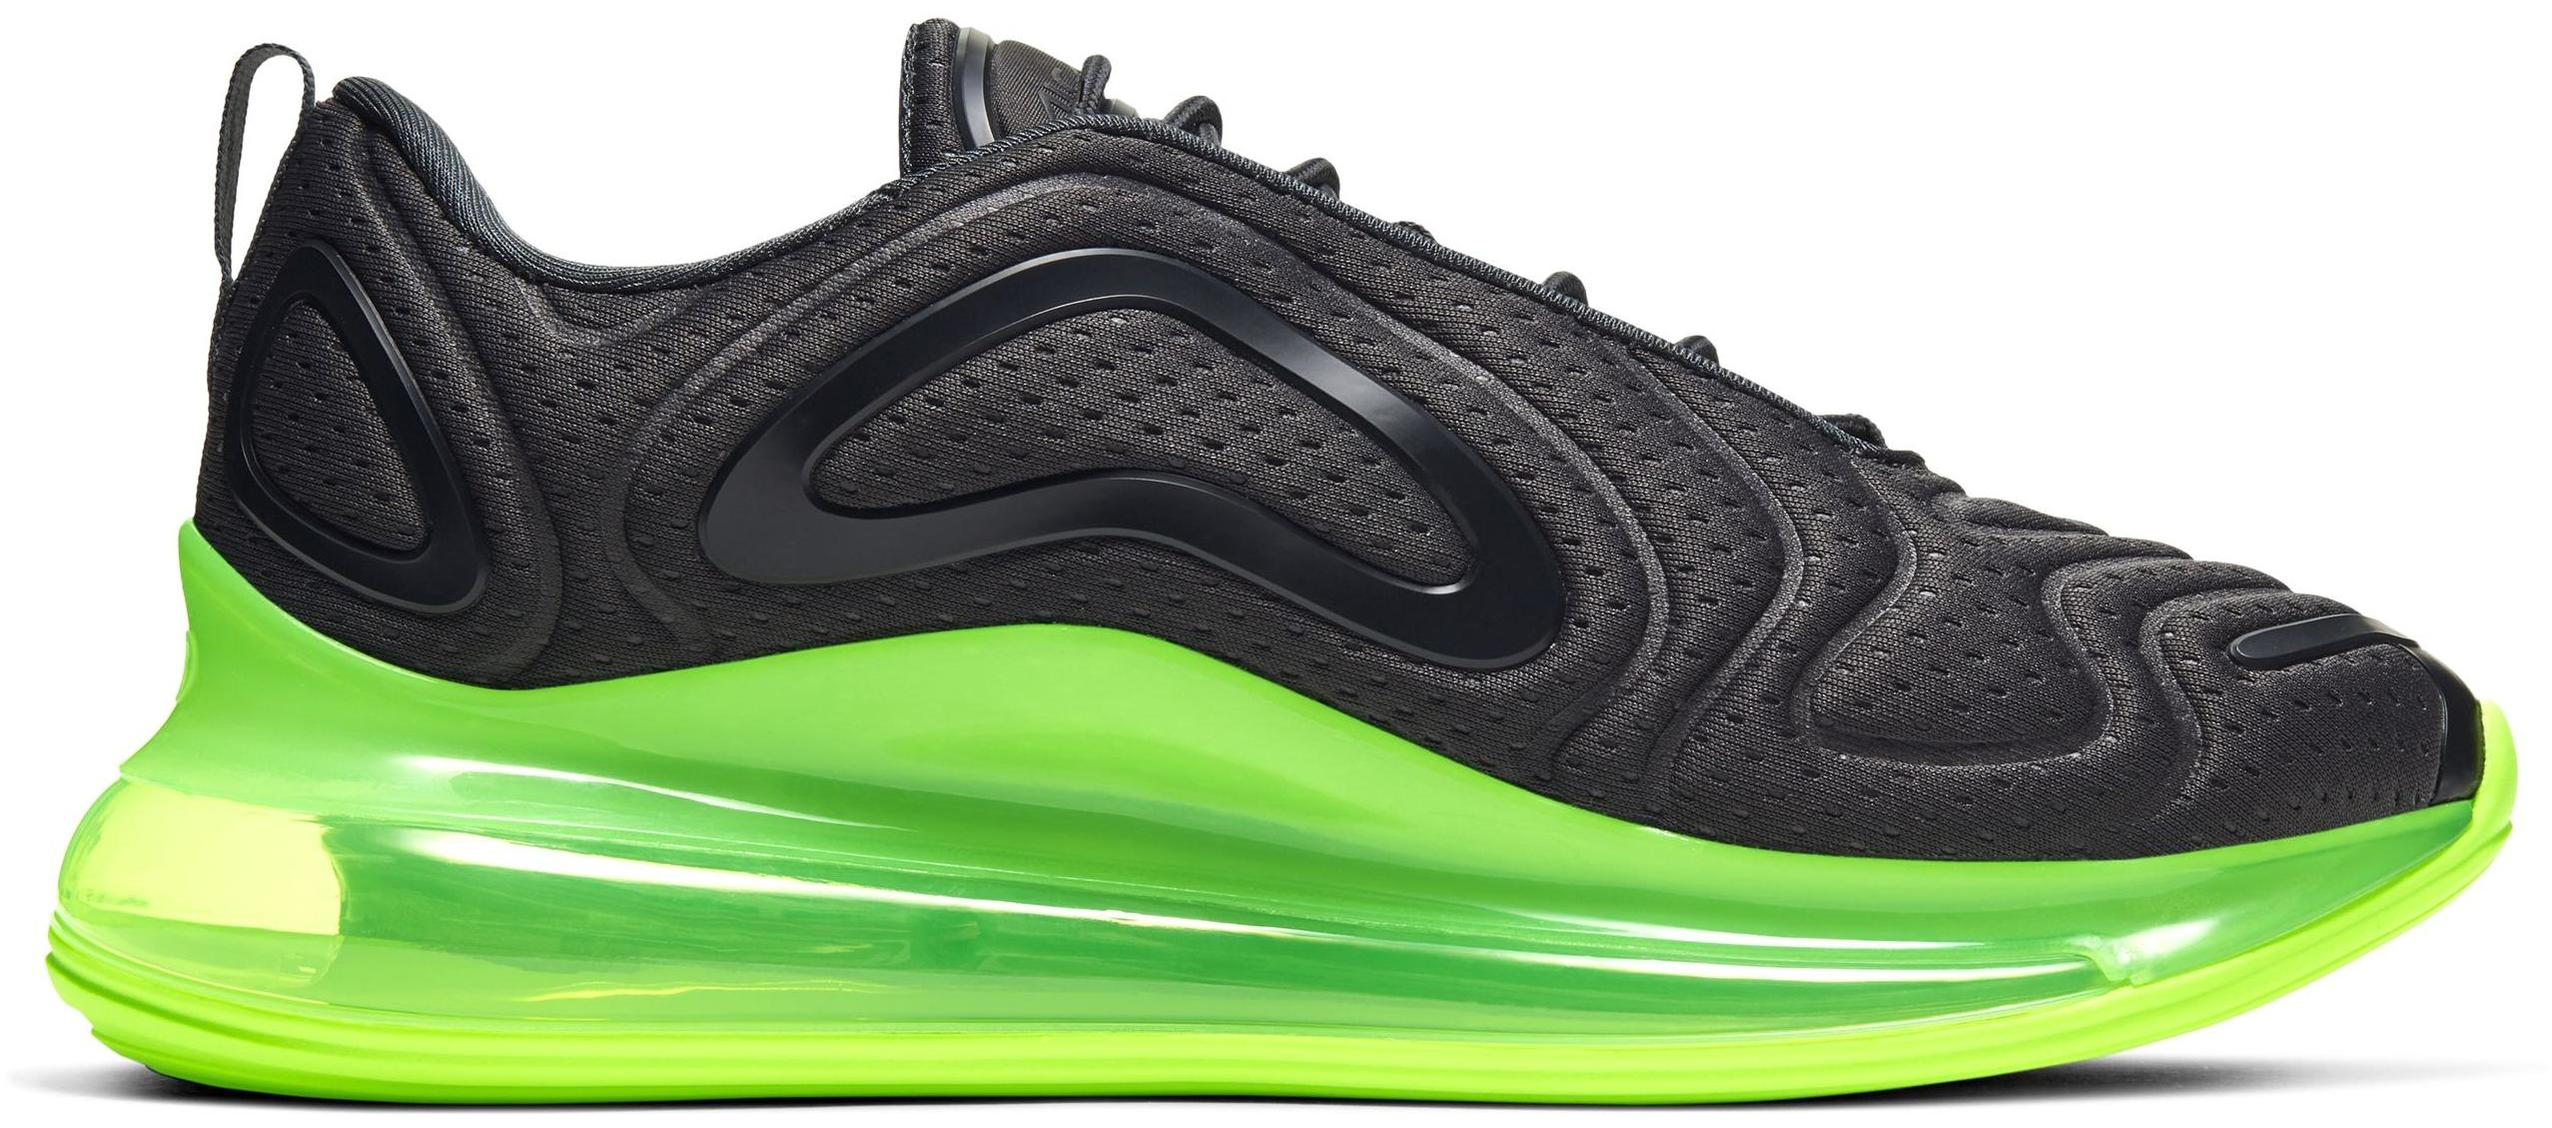 Nike Air Max 720 Anthracite/Black/Electric Green